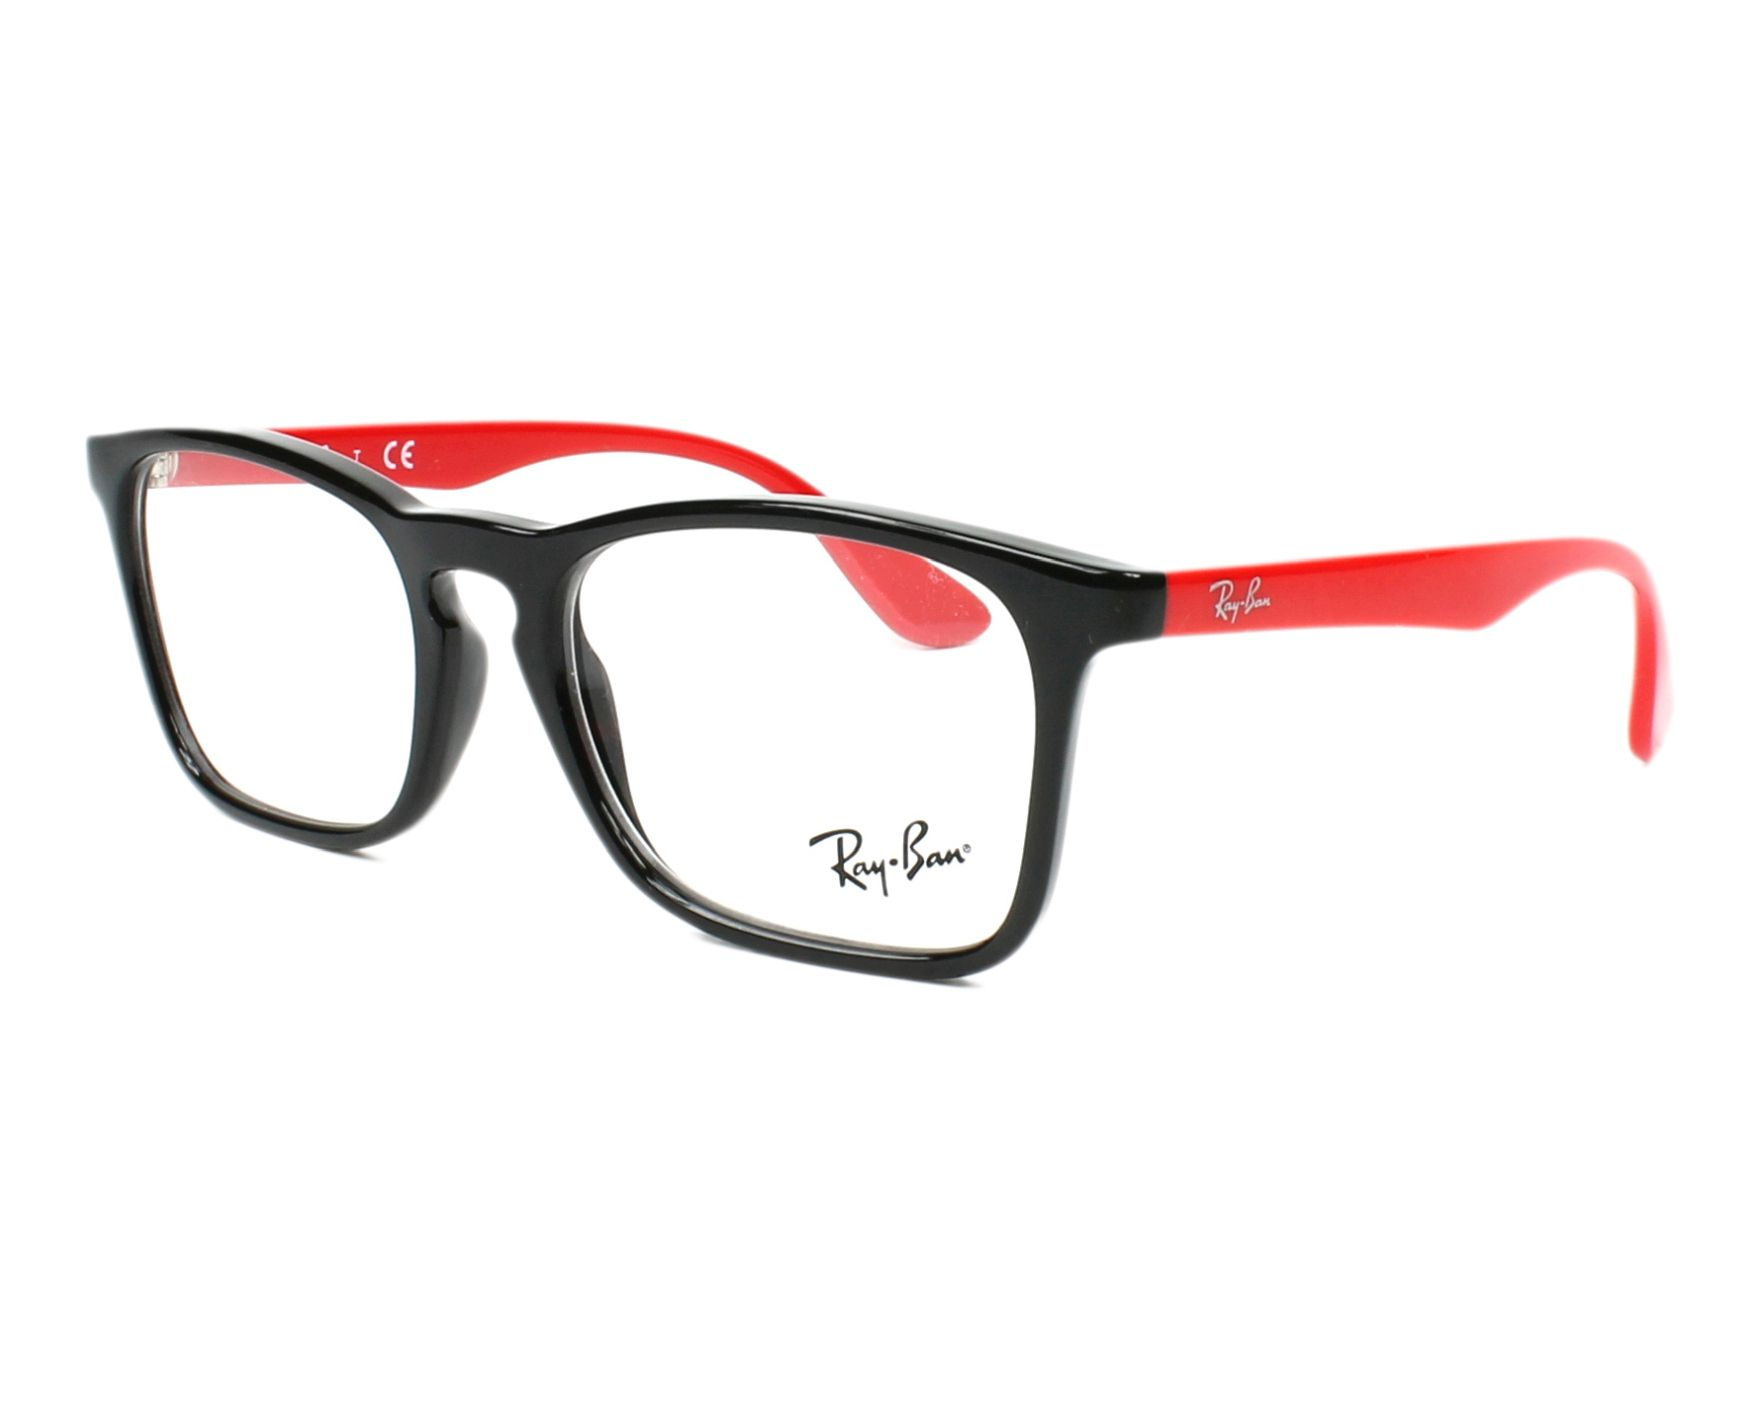 05fa8571d5a184 eyeglasses Ray-Ban RY-1553 3725 - Black Red profile view